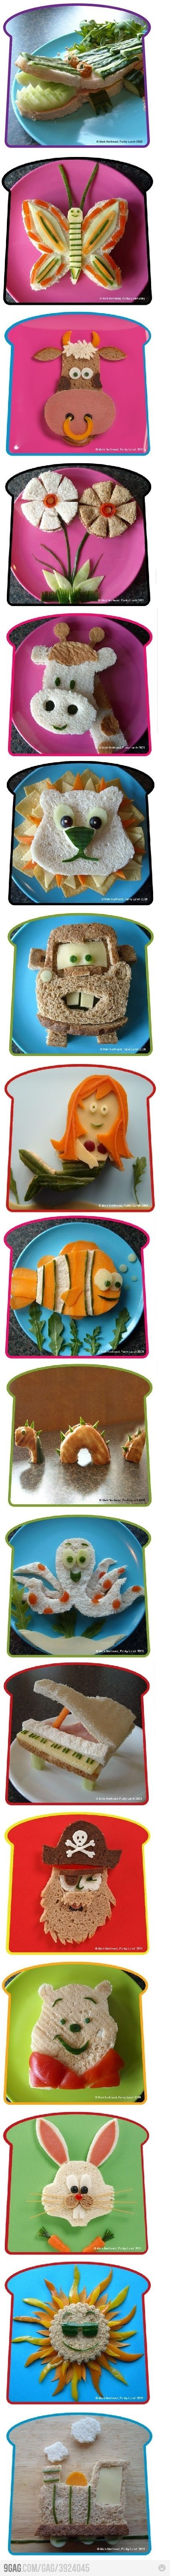 Some fantastico ways to make fun #Disney themed sammies for the kiddos (and the adultos!)